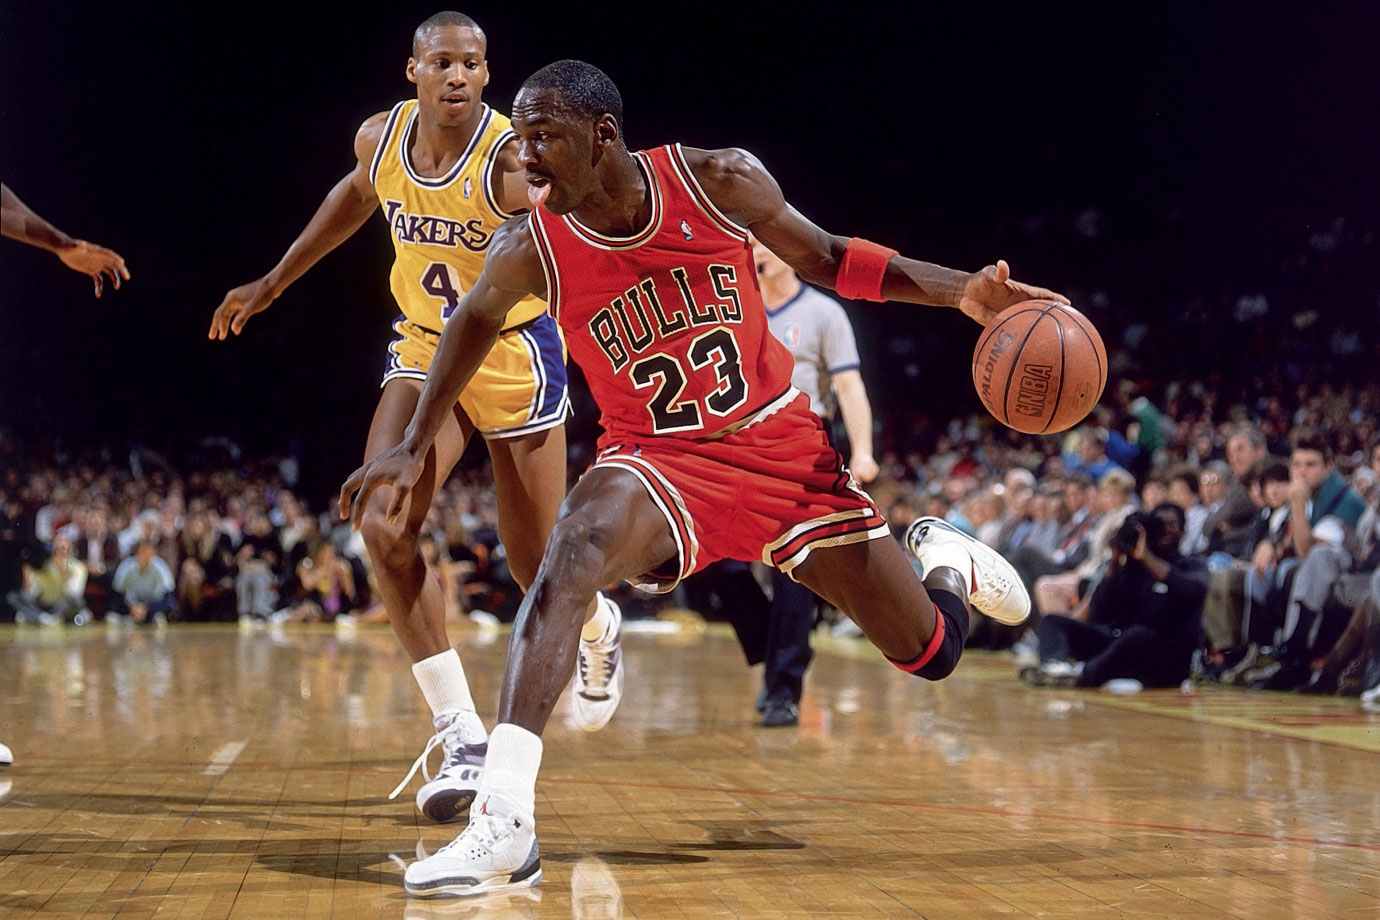 Michael Jordan fakes on a drive against the Los Angeles Lakers in February 1988. Jordan won his first MVP Award that season, averaging 35.0 points, 5.9 assists, 5.5 rebounds, 3.2 steals and 1.6 blocks. Those final two stats helped Jordan claim Defensive Player of the Year.